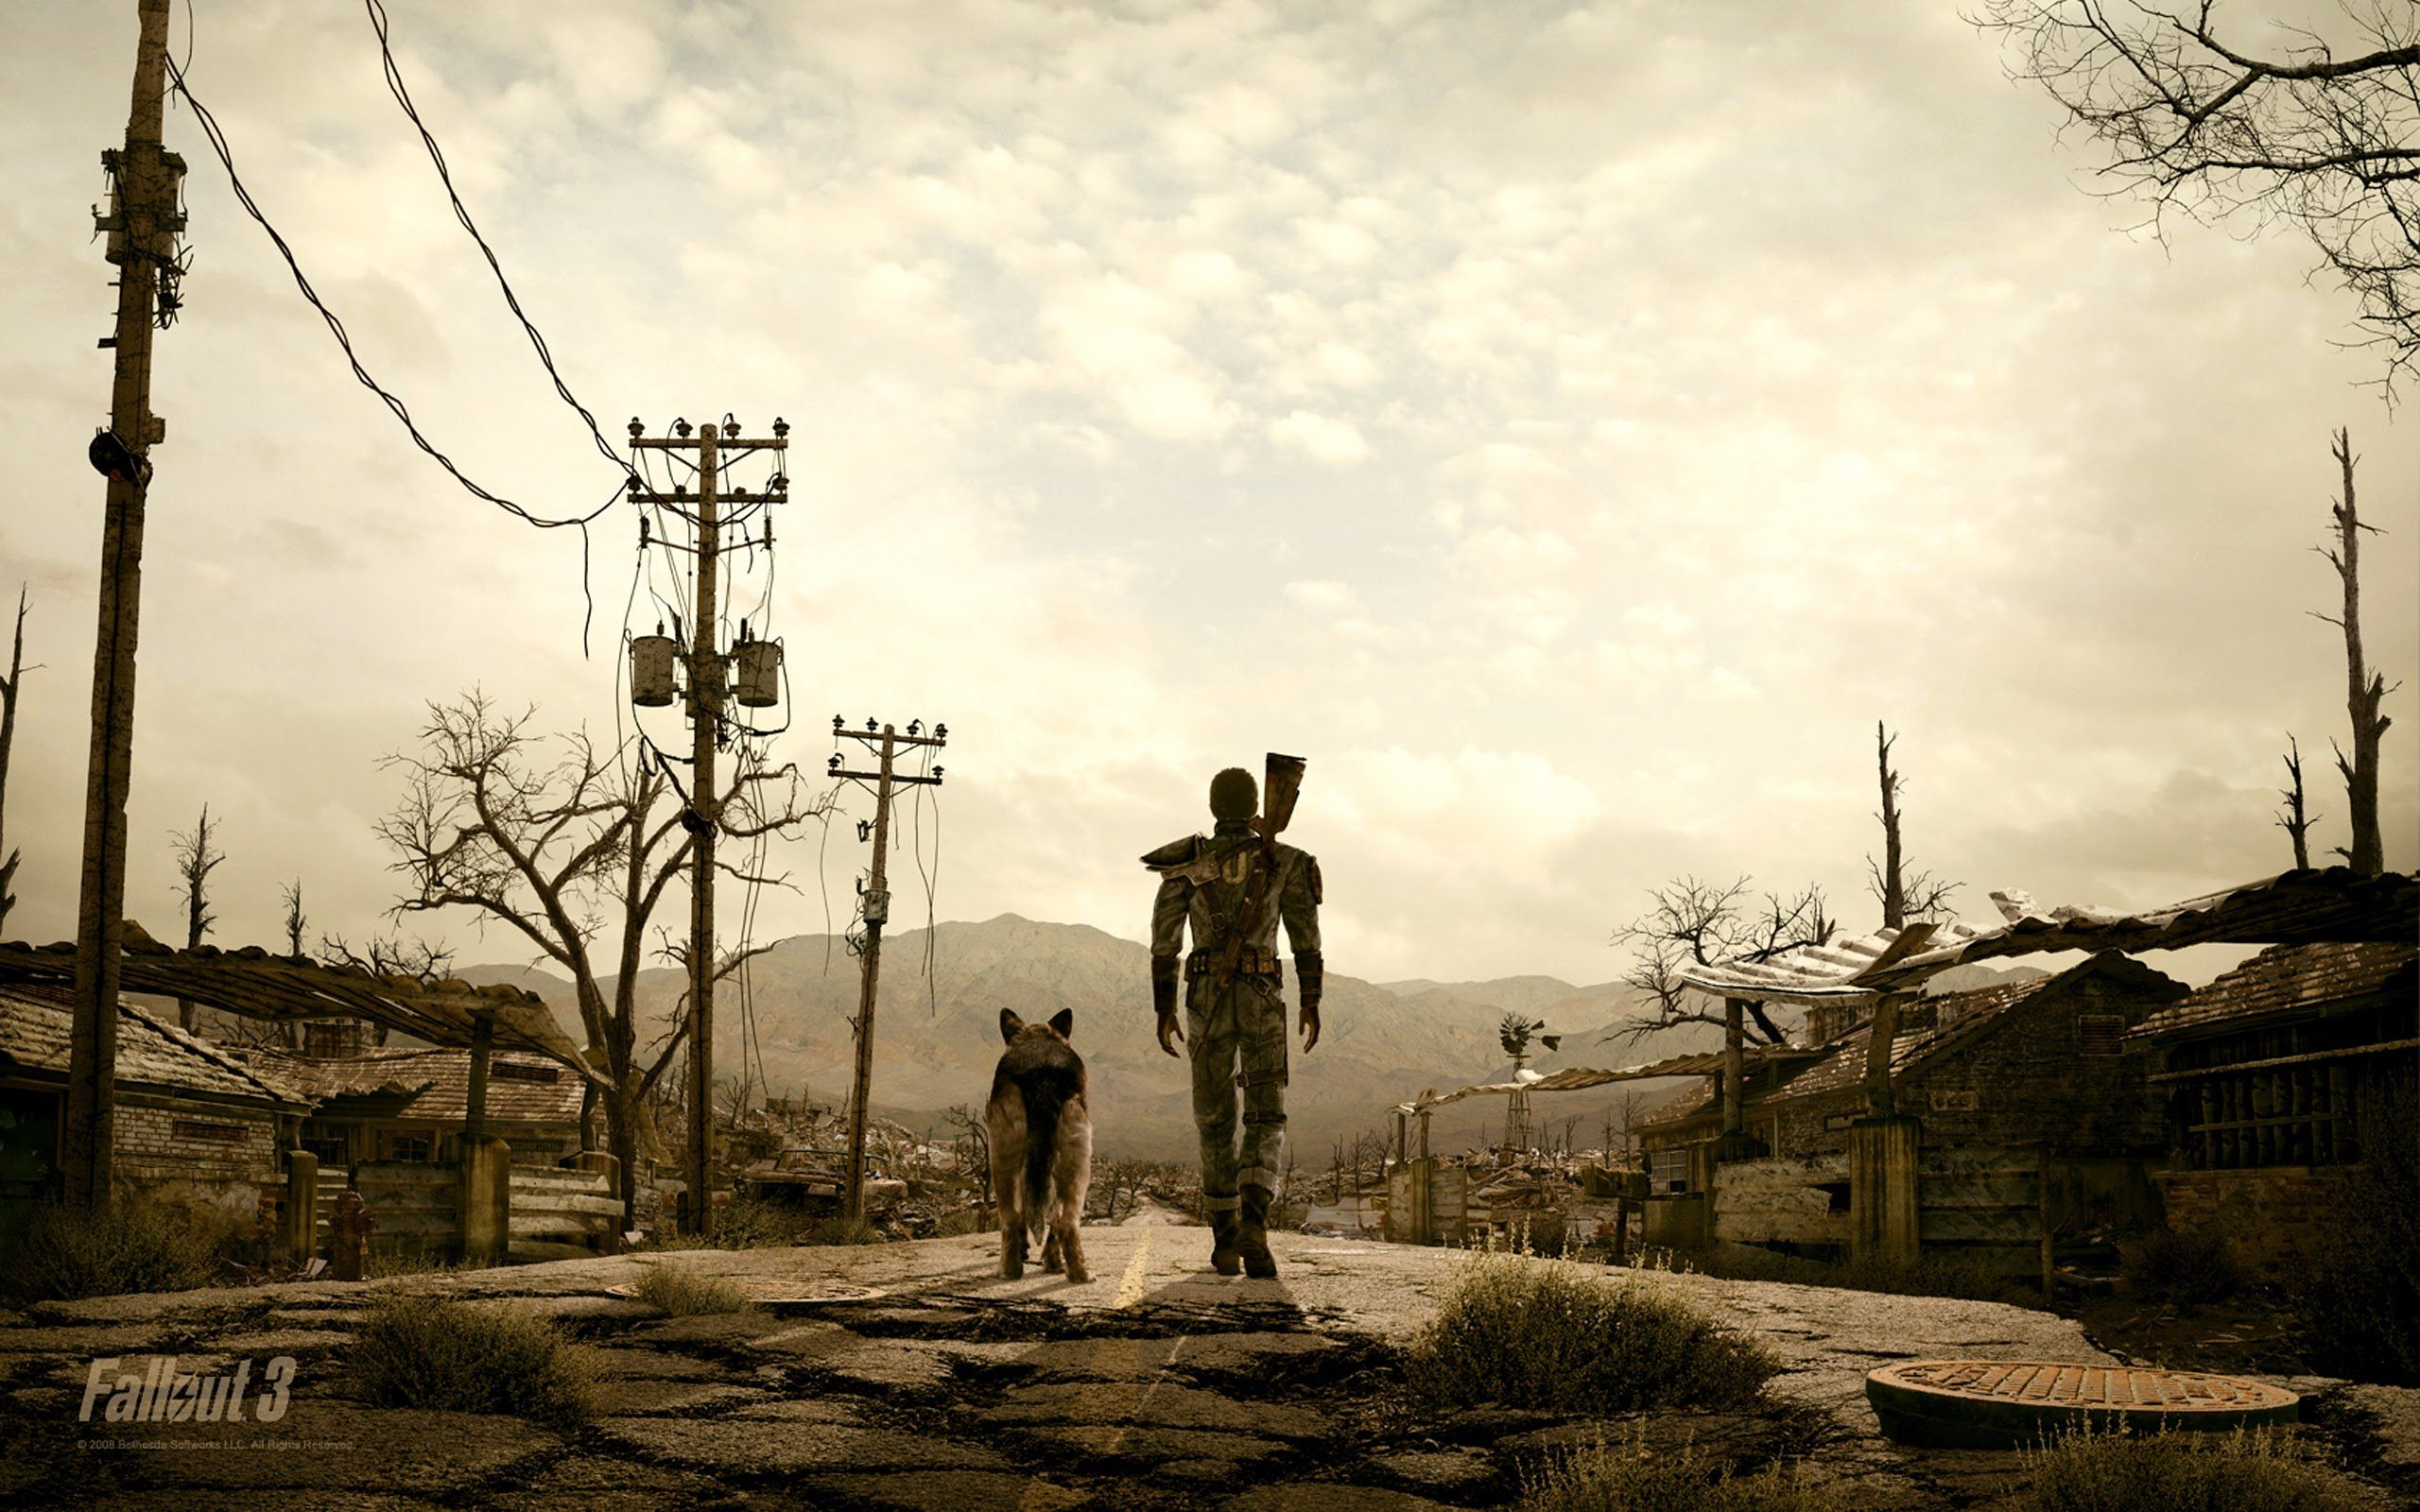 Fallout 3 Next Gen Graphics 2015 in 1080p HD Fallout